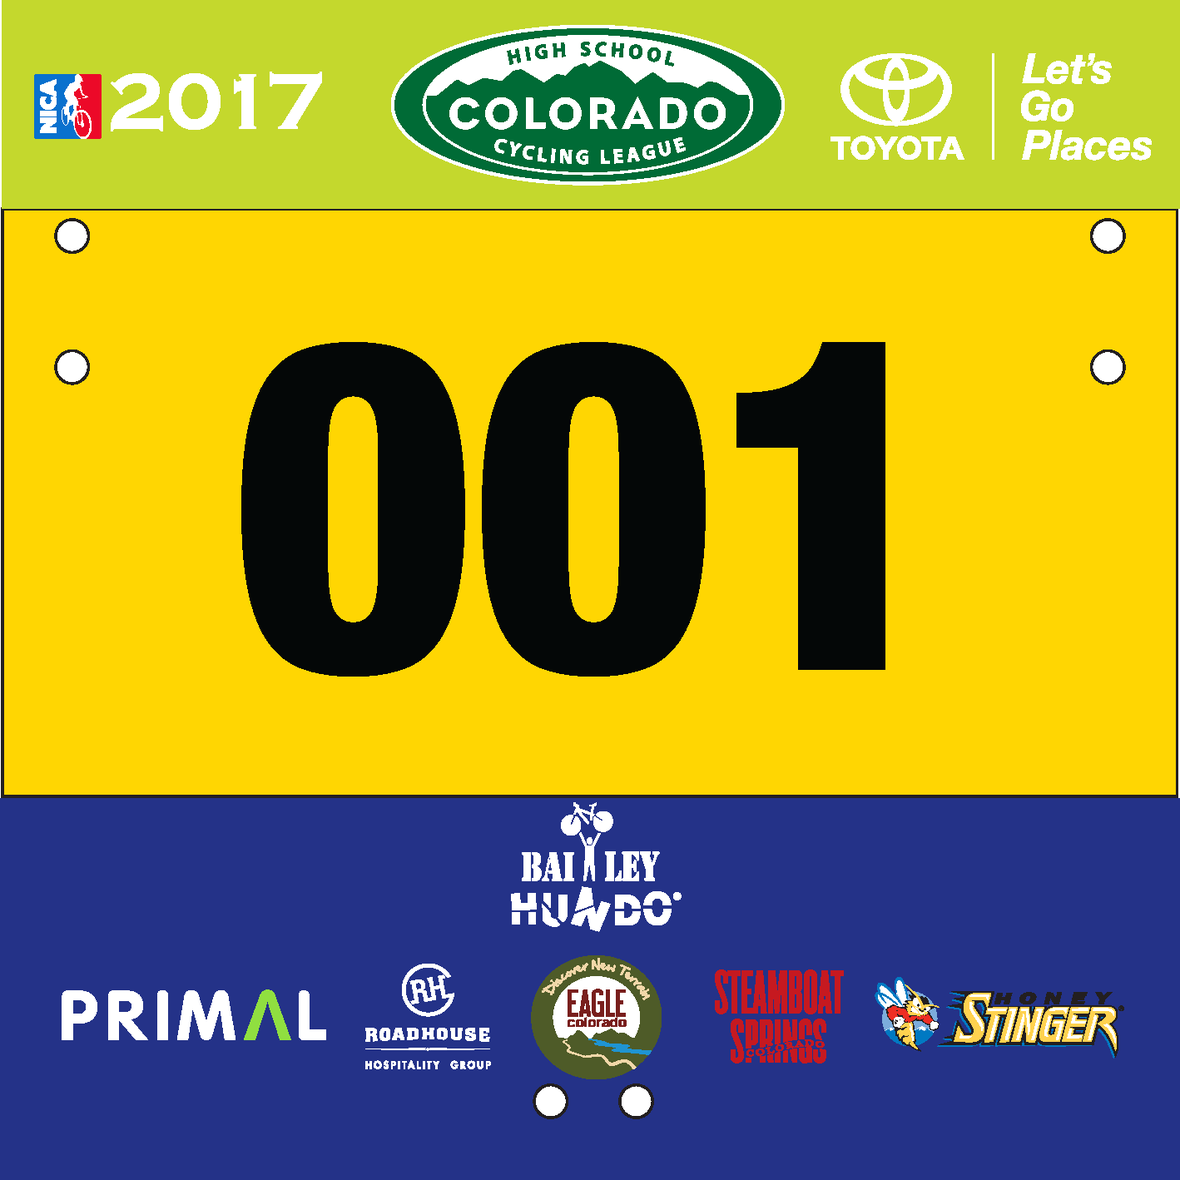 2017 North Conference Legacy Plates Mockup